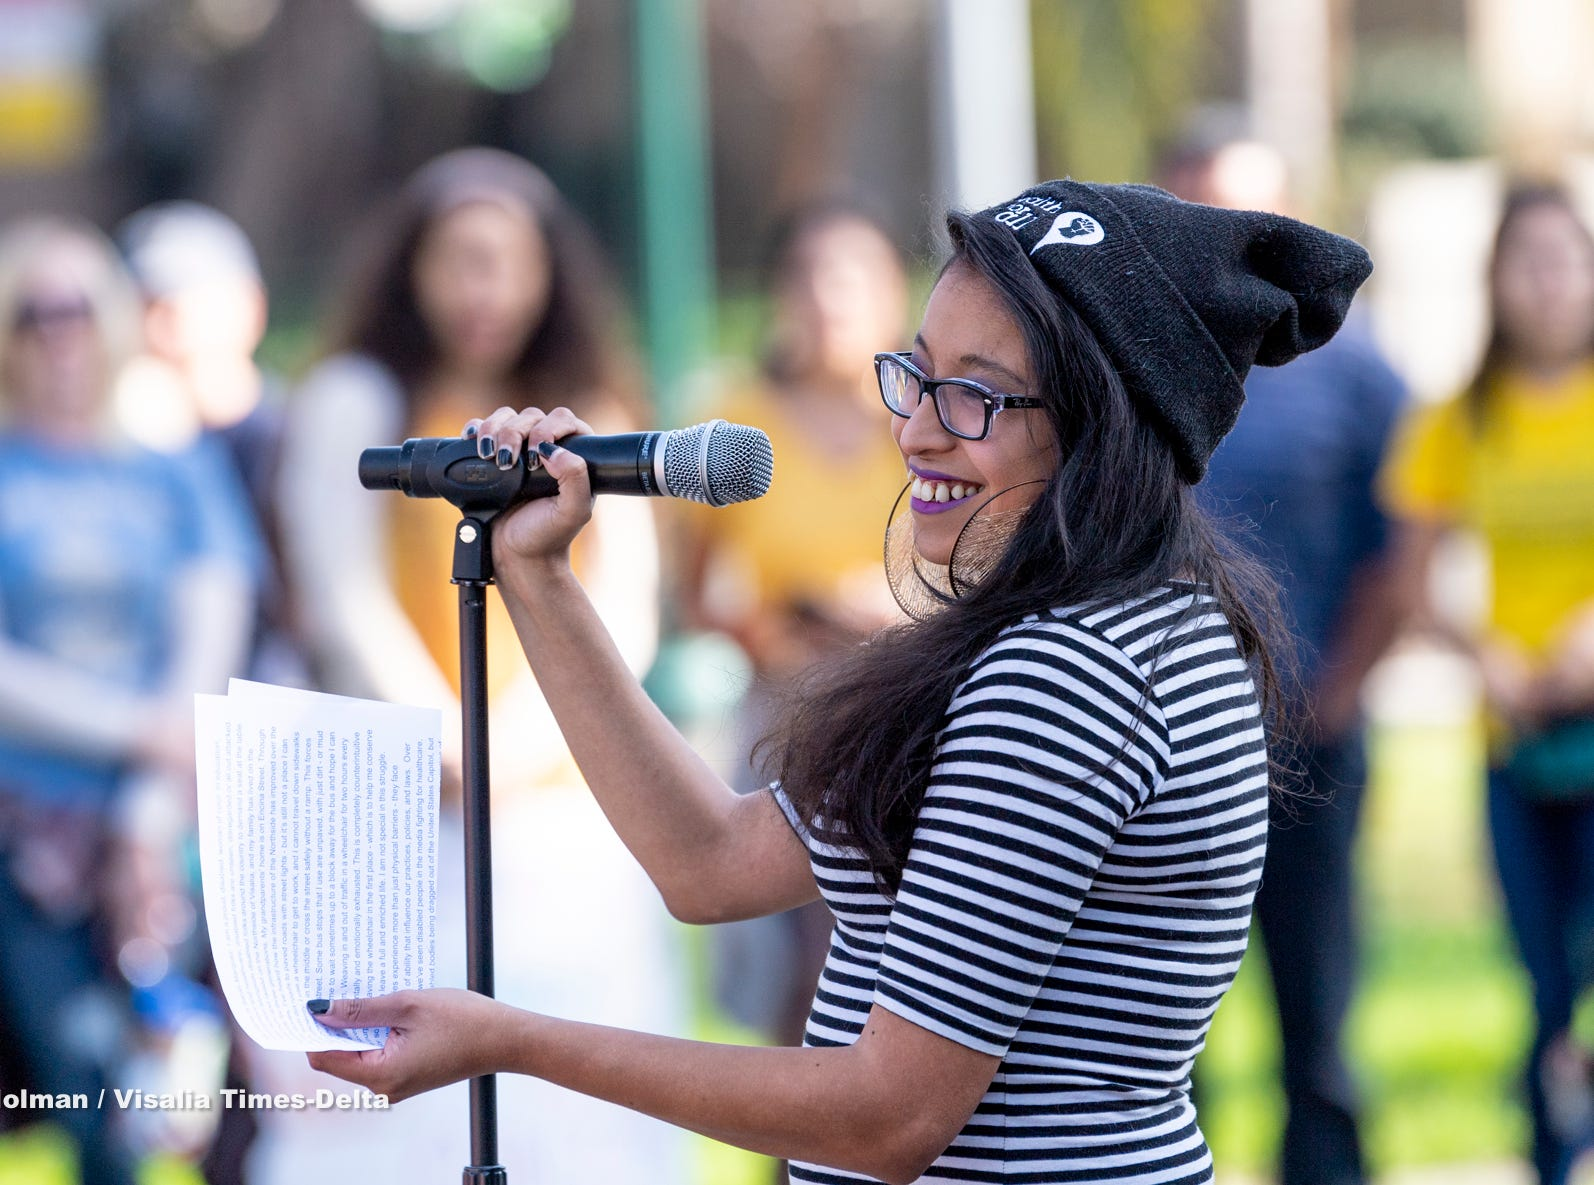 Sarah Marquez of Visalia speaks at Oval Park after the Women's March in Visalia on Saturday, January 19, 2019.